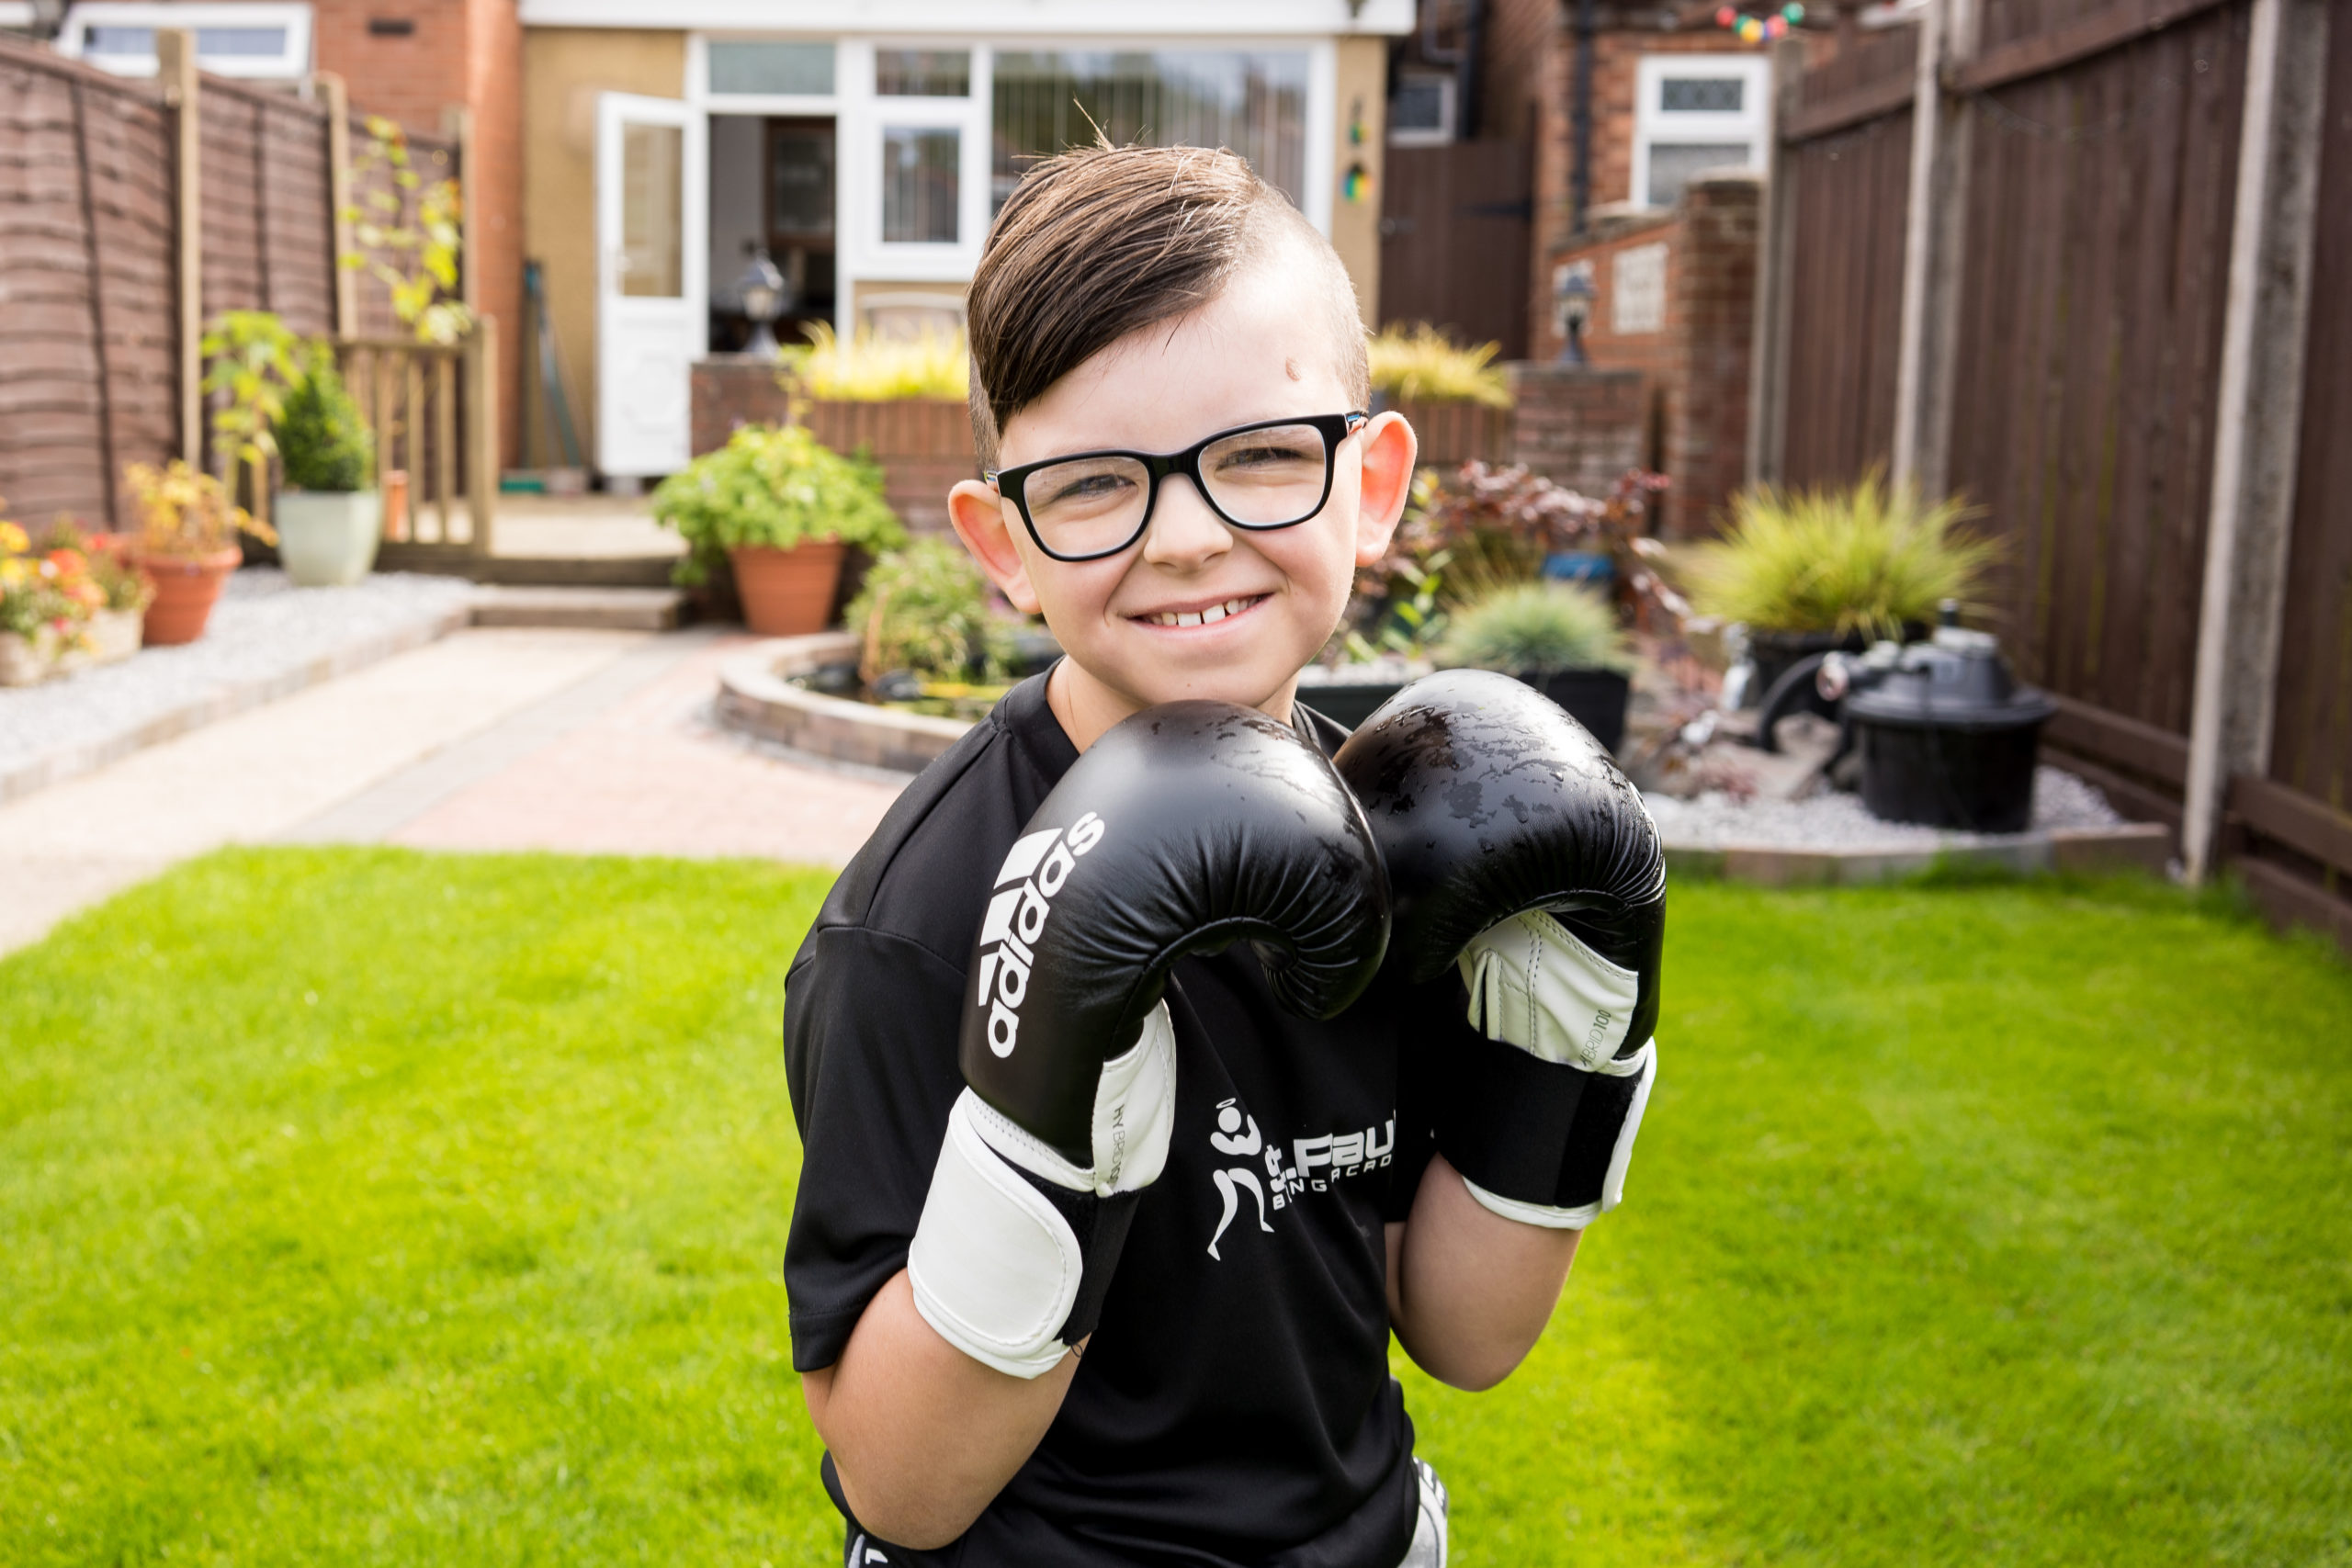 Seven-year-old Finleigh boxes clever to raise vital funds for St Paul's